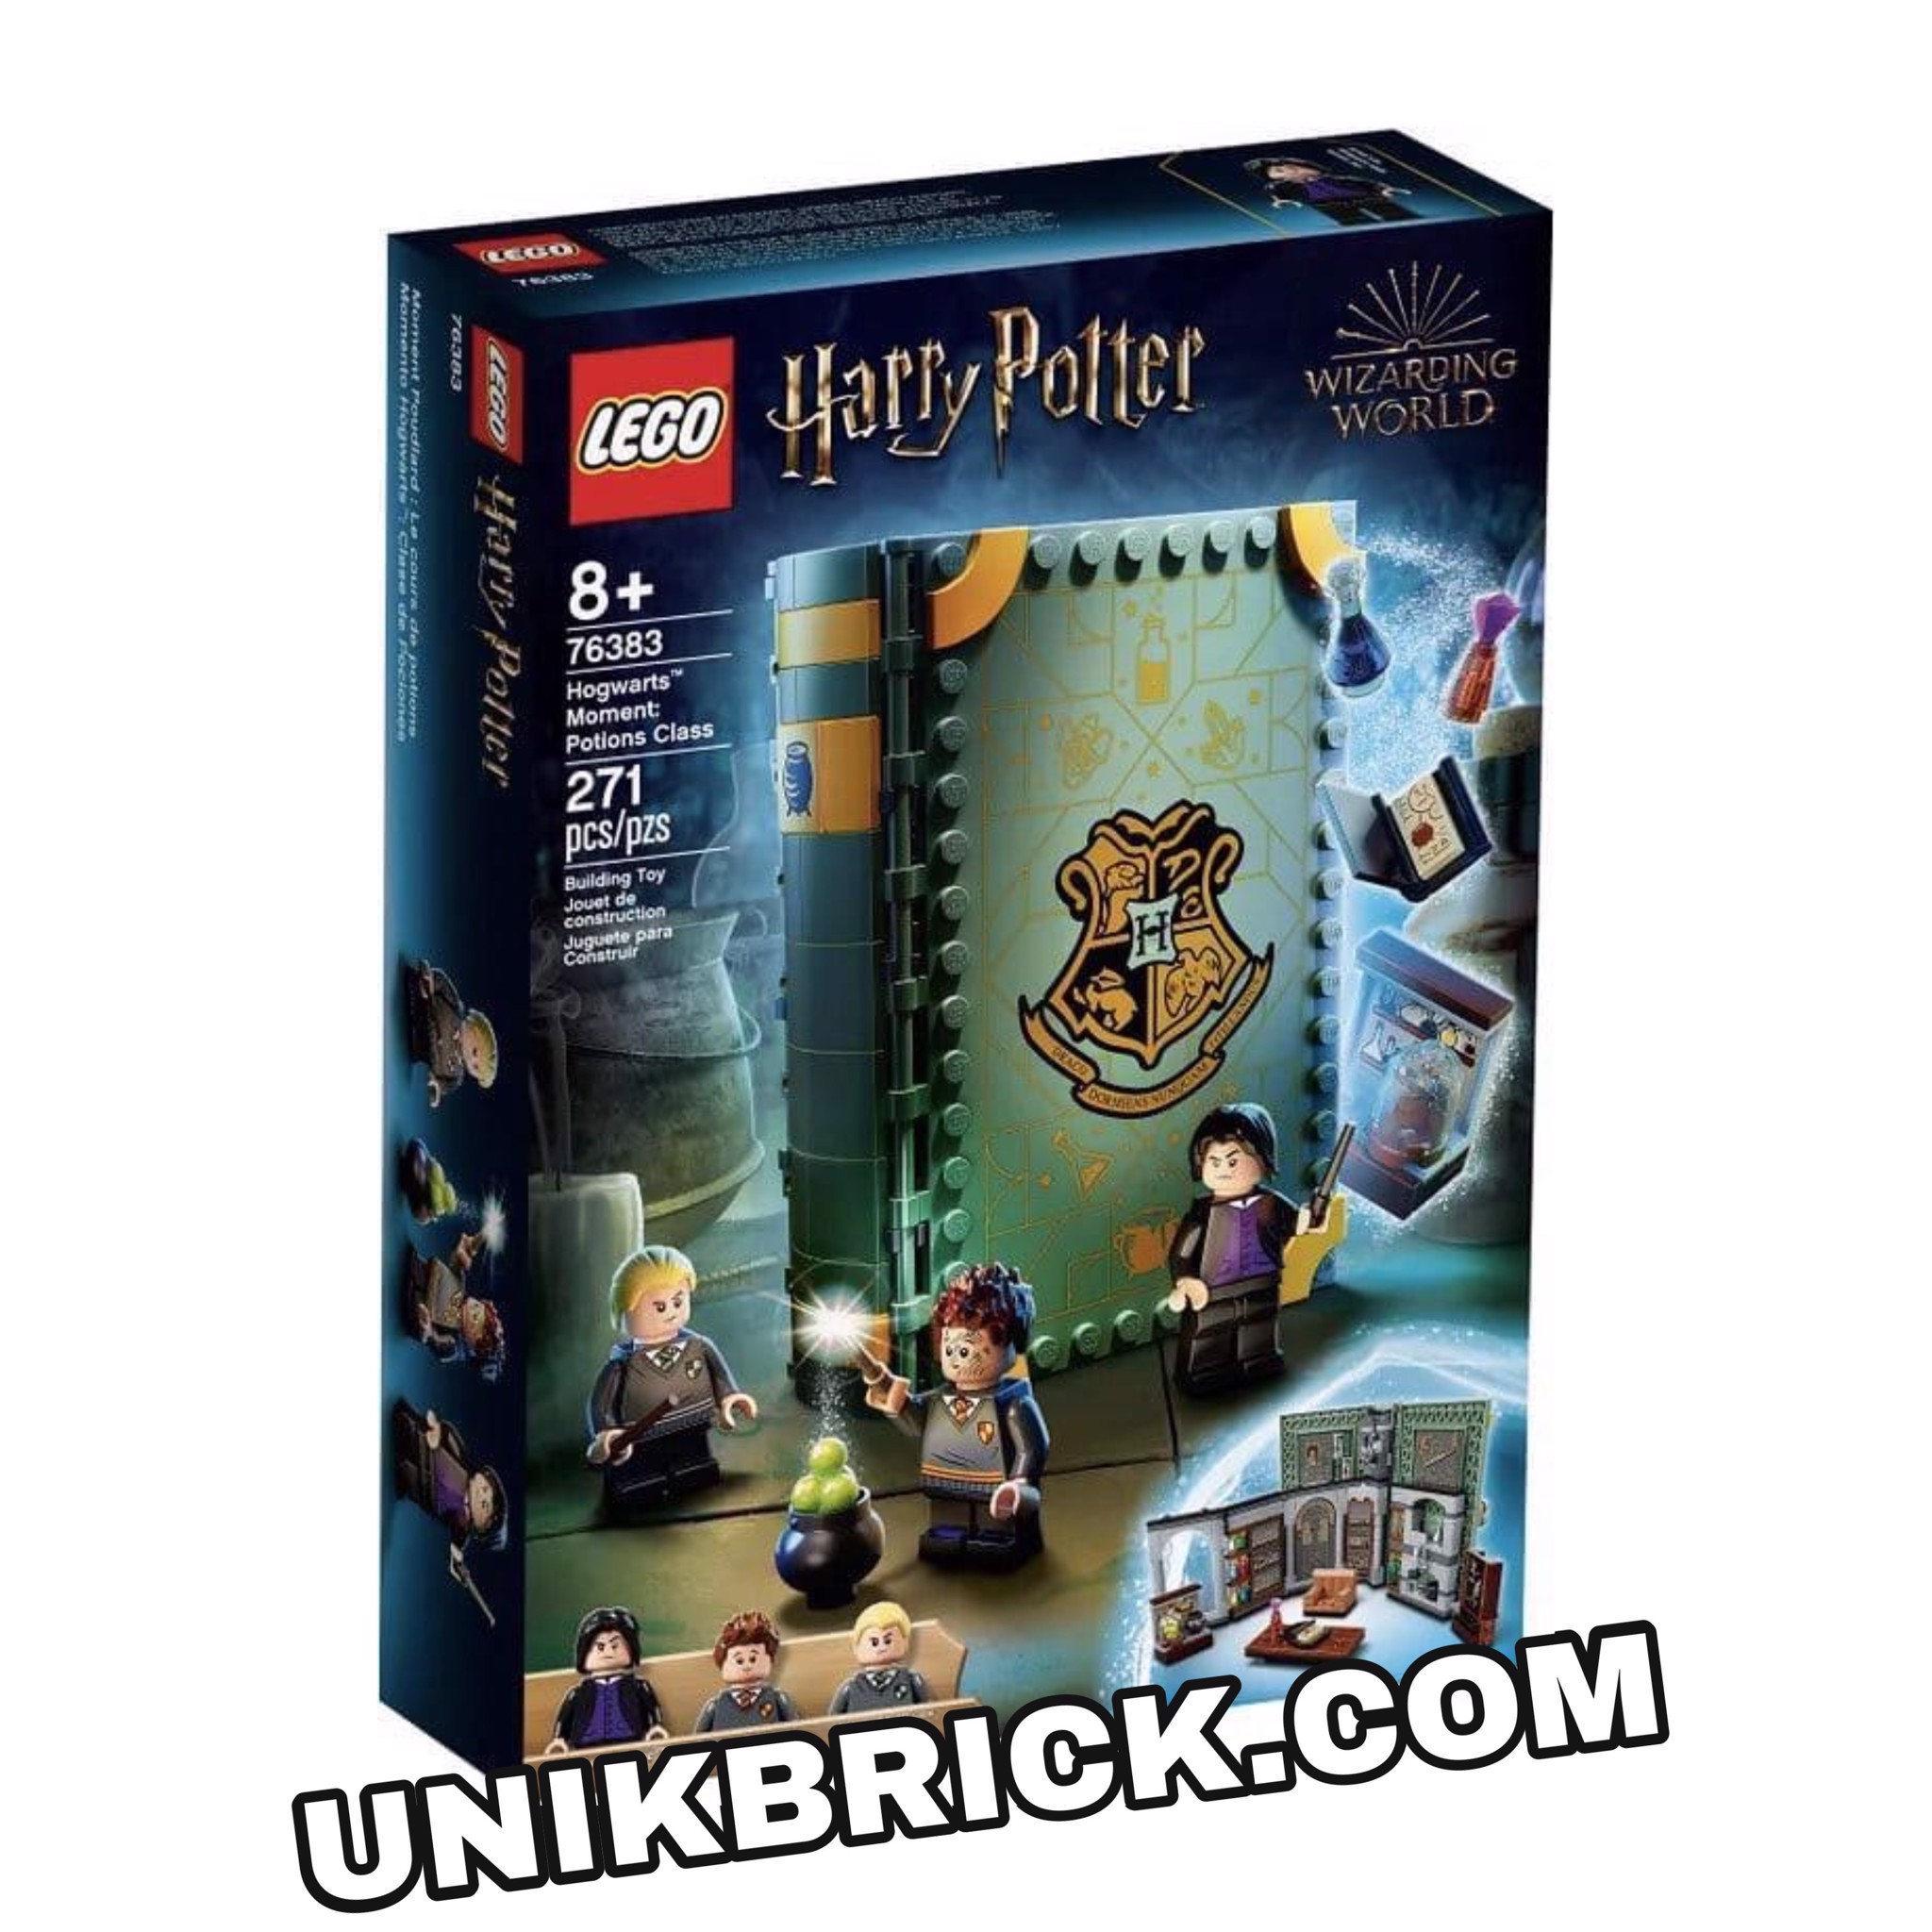 [HÀNG ĐẶT/ ORDER] LEGO Harry Potter 76383 Hogwarts Moment: Potions Class